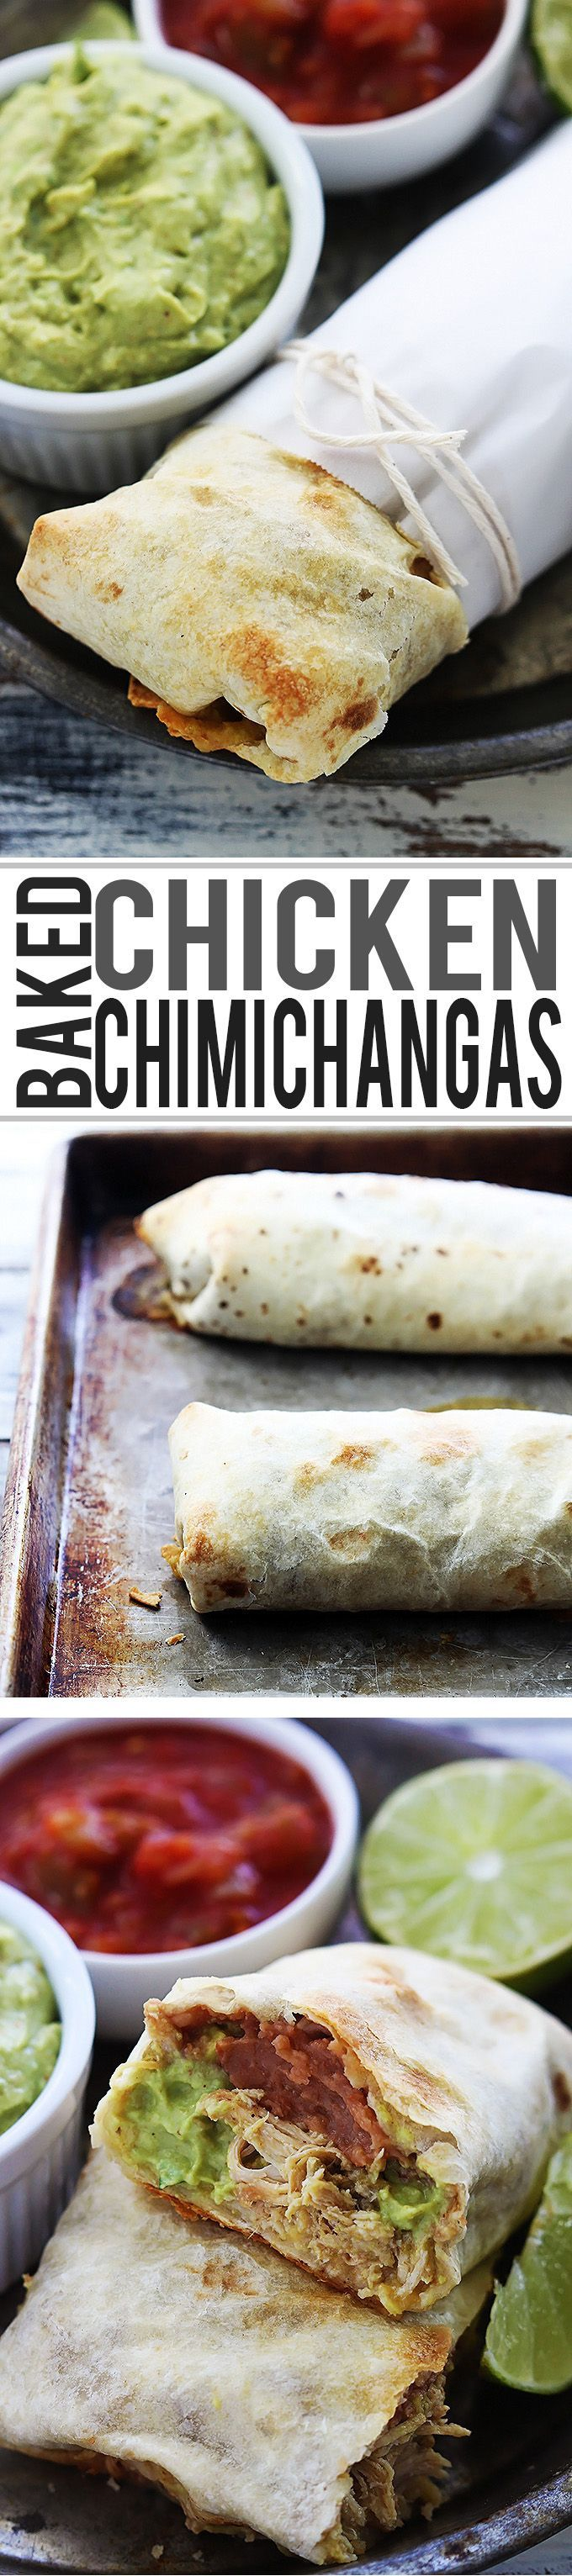 Crispy, healthy baked (not fried!) chicken chimichangas you can whip up in a hurry! (scheduled via http://www.tailwindapp.com?utm_source=pinterest&utm_medium=twpin&utm_content=post613349&utm_campaign=scheduler_attribution)